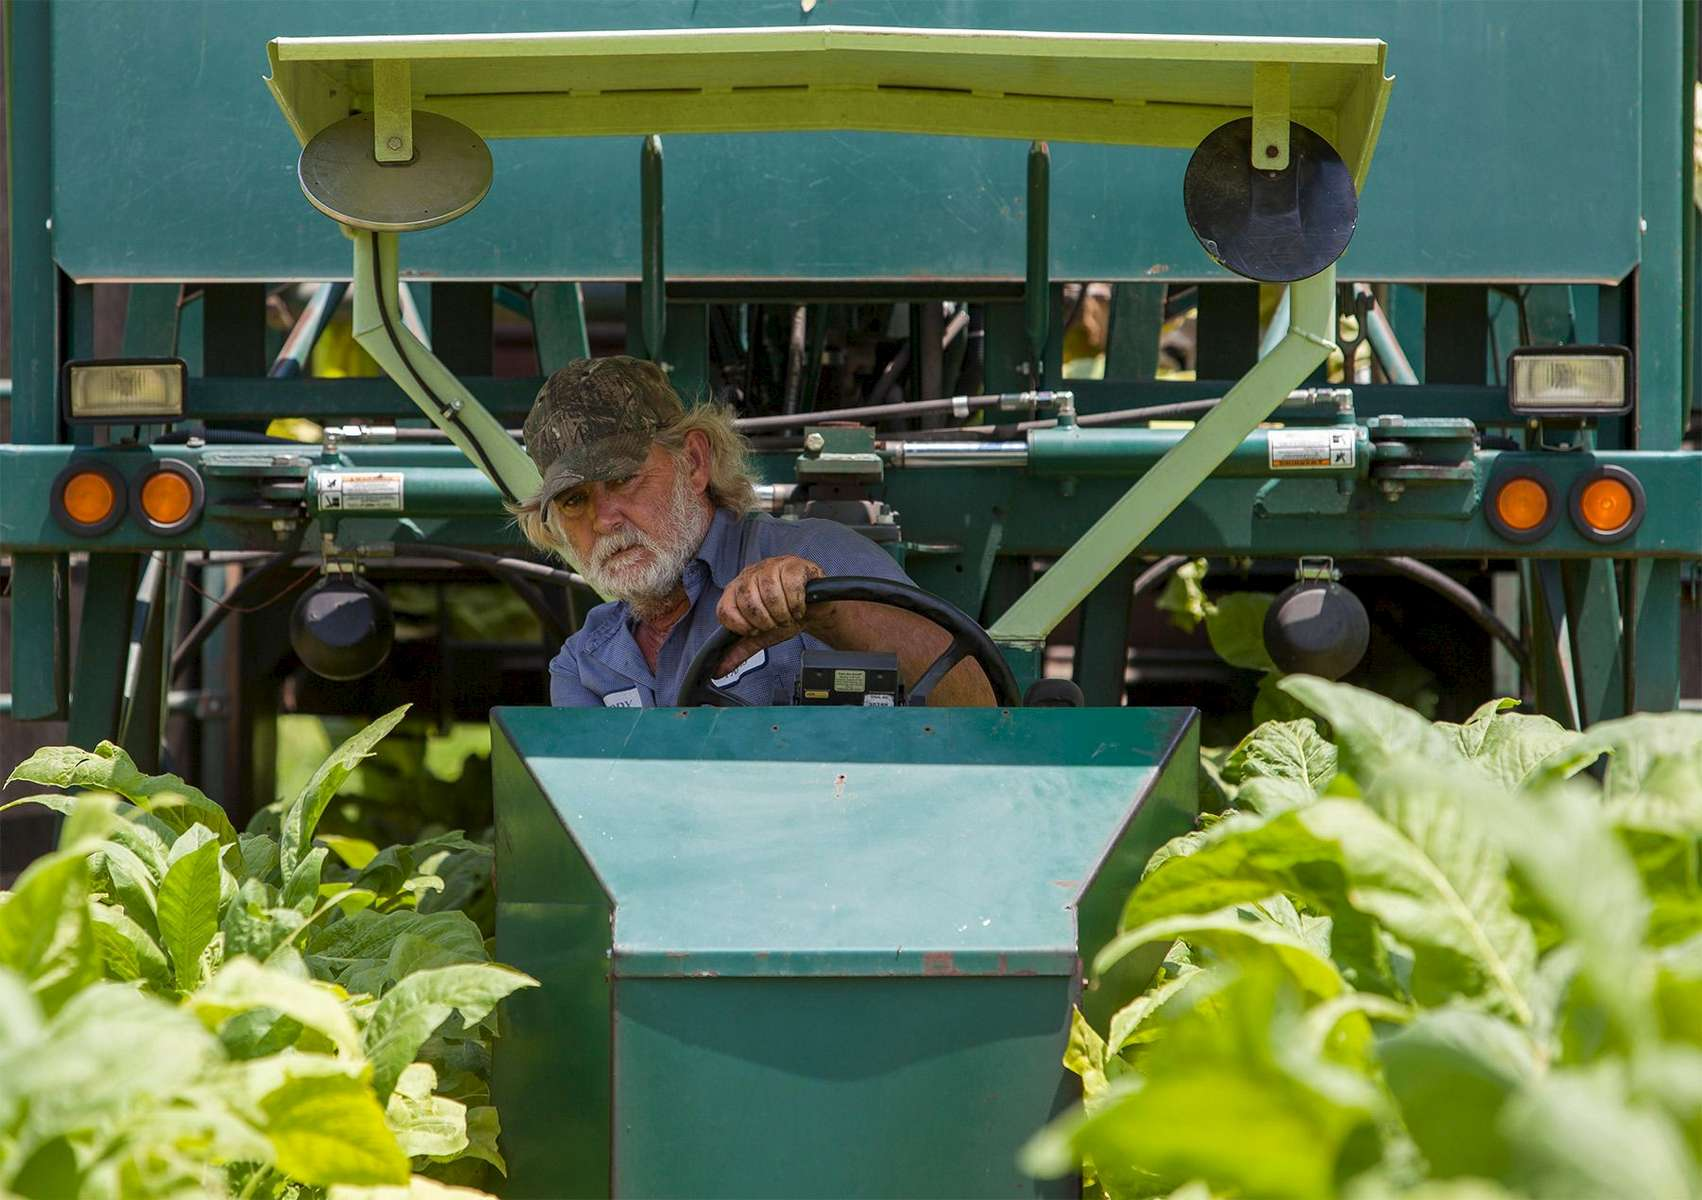 Lester {quote}Buddy{quote} Stroud, a farm hand at Shelley Farms, operates a tobacco harvester at Shelley Farms in the Pleasant View community of Horry County, South Carolina July 26, 2013. The traditional tobacco harvest requires many labor intensive hours to bring the crop to market, especially with the flue-cured variety prominent in the southern United States. With the growing health concerns with smoking in the US, most farmers use market cooperatives to sell their crop to the growing markets in China.      Picture taken on July 26, 2013.   REUTERS/Randall Hill (UNITED STATES)